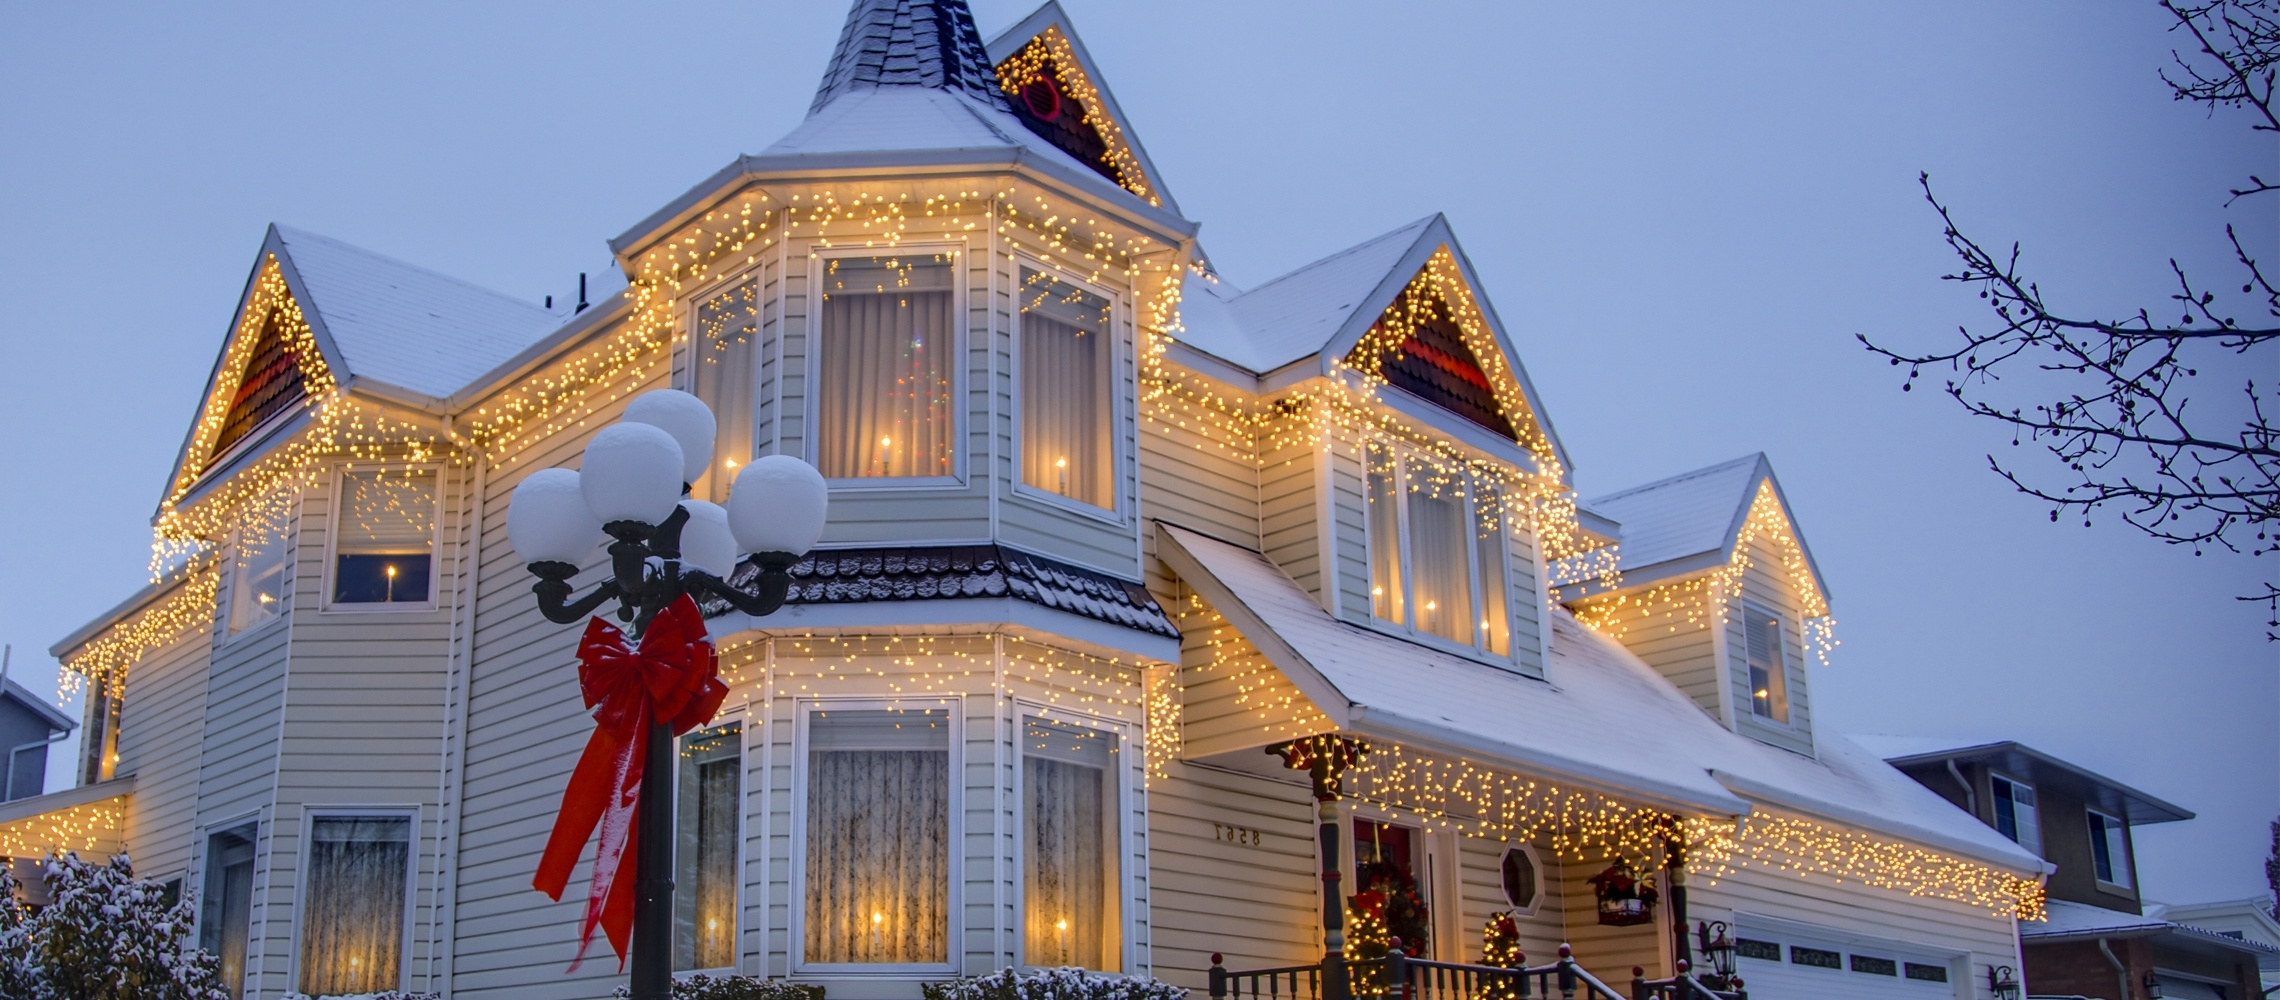 Favorite Outdoor Hanging Icicle Lights In Christmas Lights Ideas For The Roof (View 8 of 20)